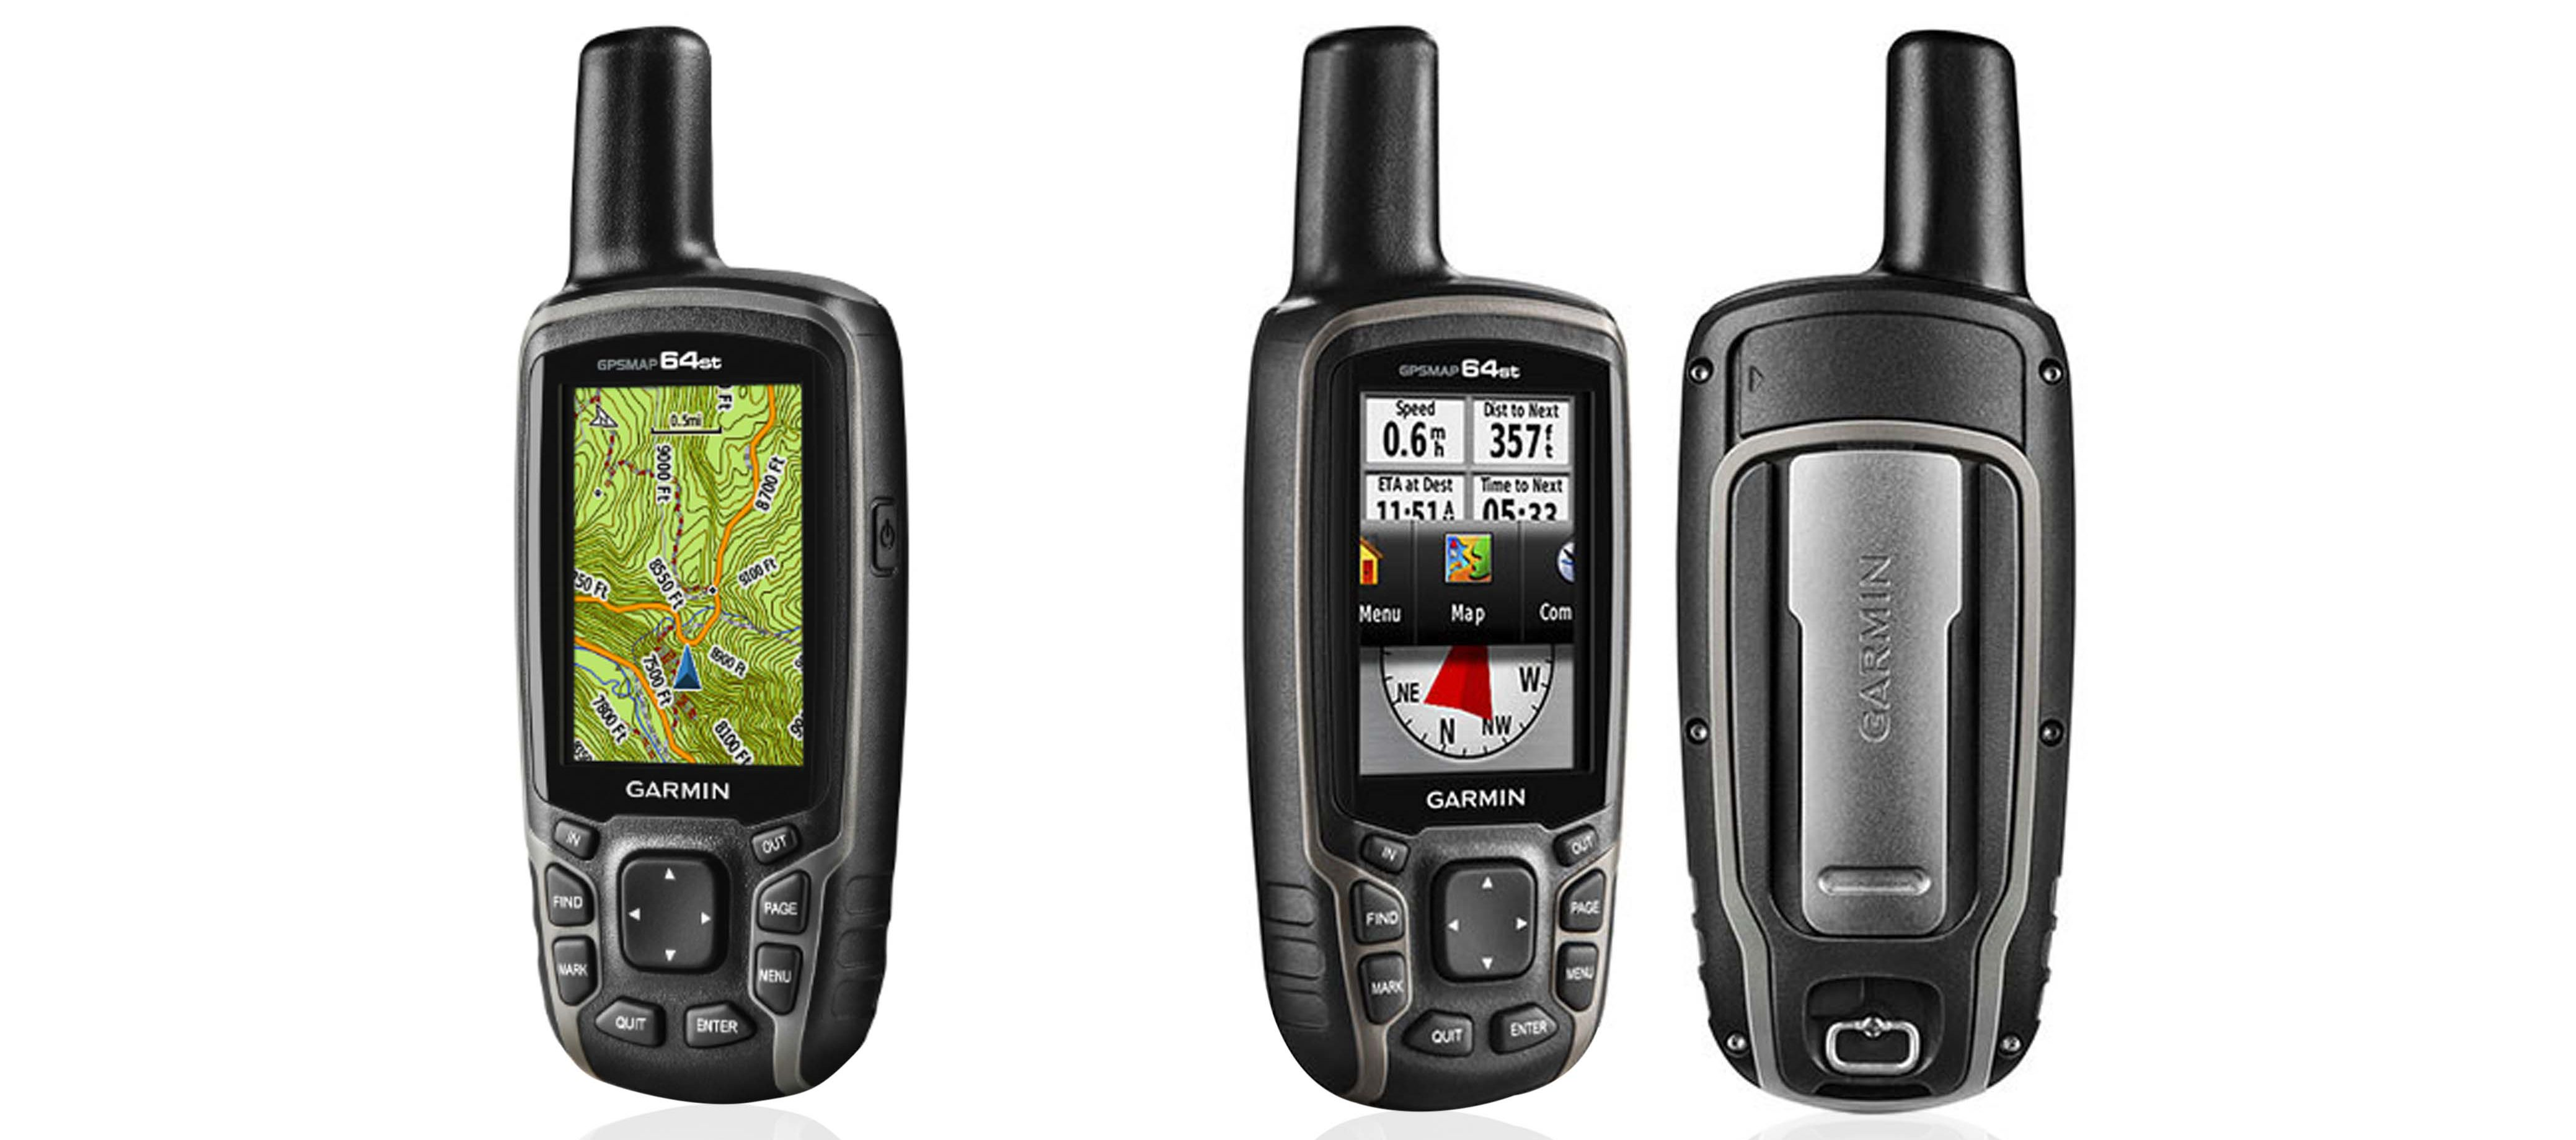 2019 *** 6 Best Hunting GPS Reviewed and Rated - Mike's Gear